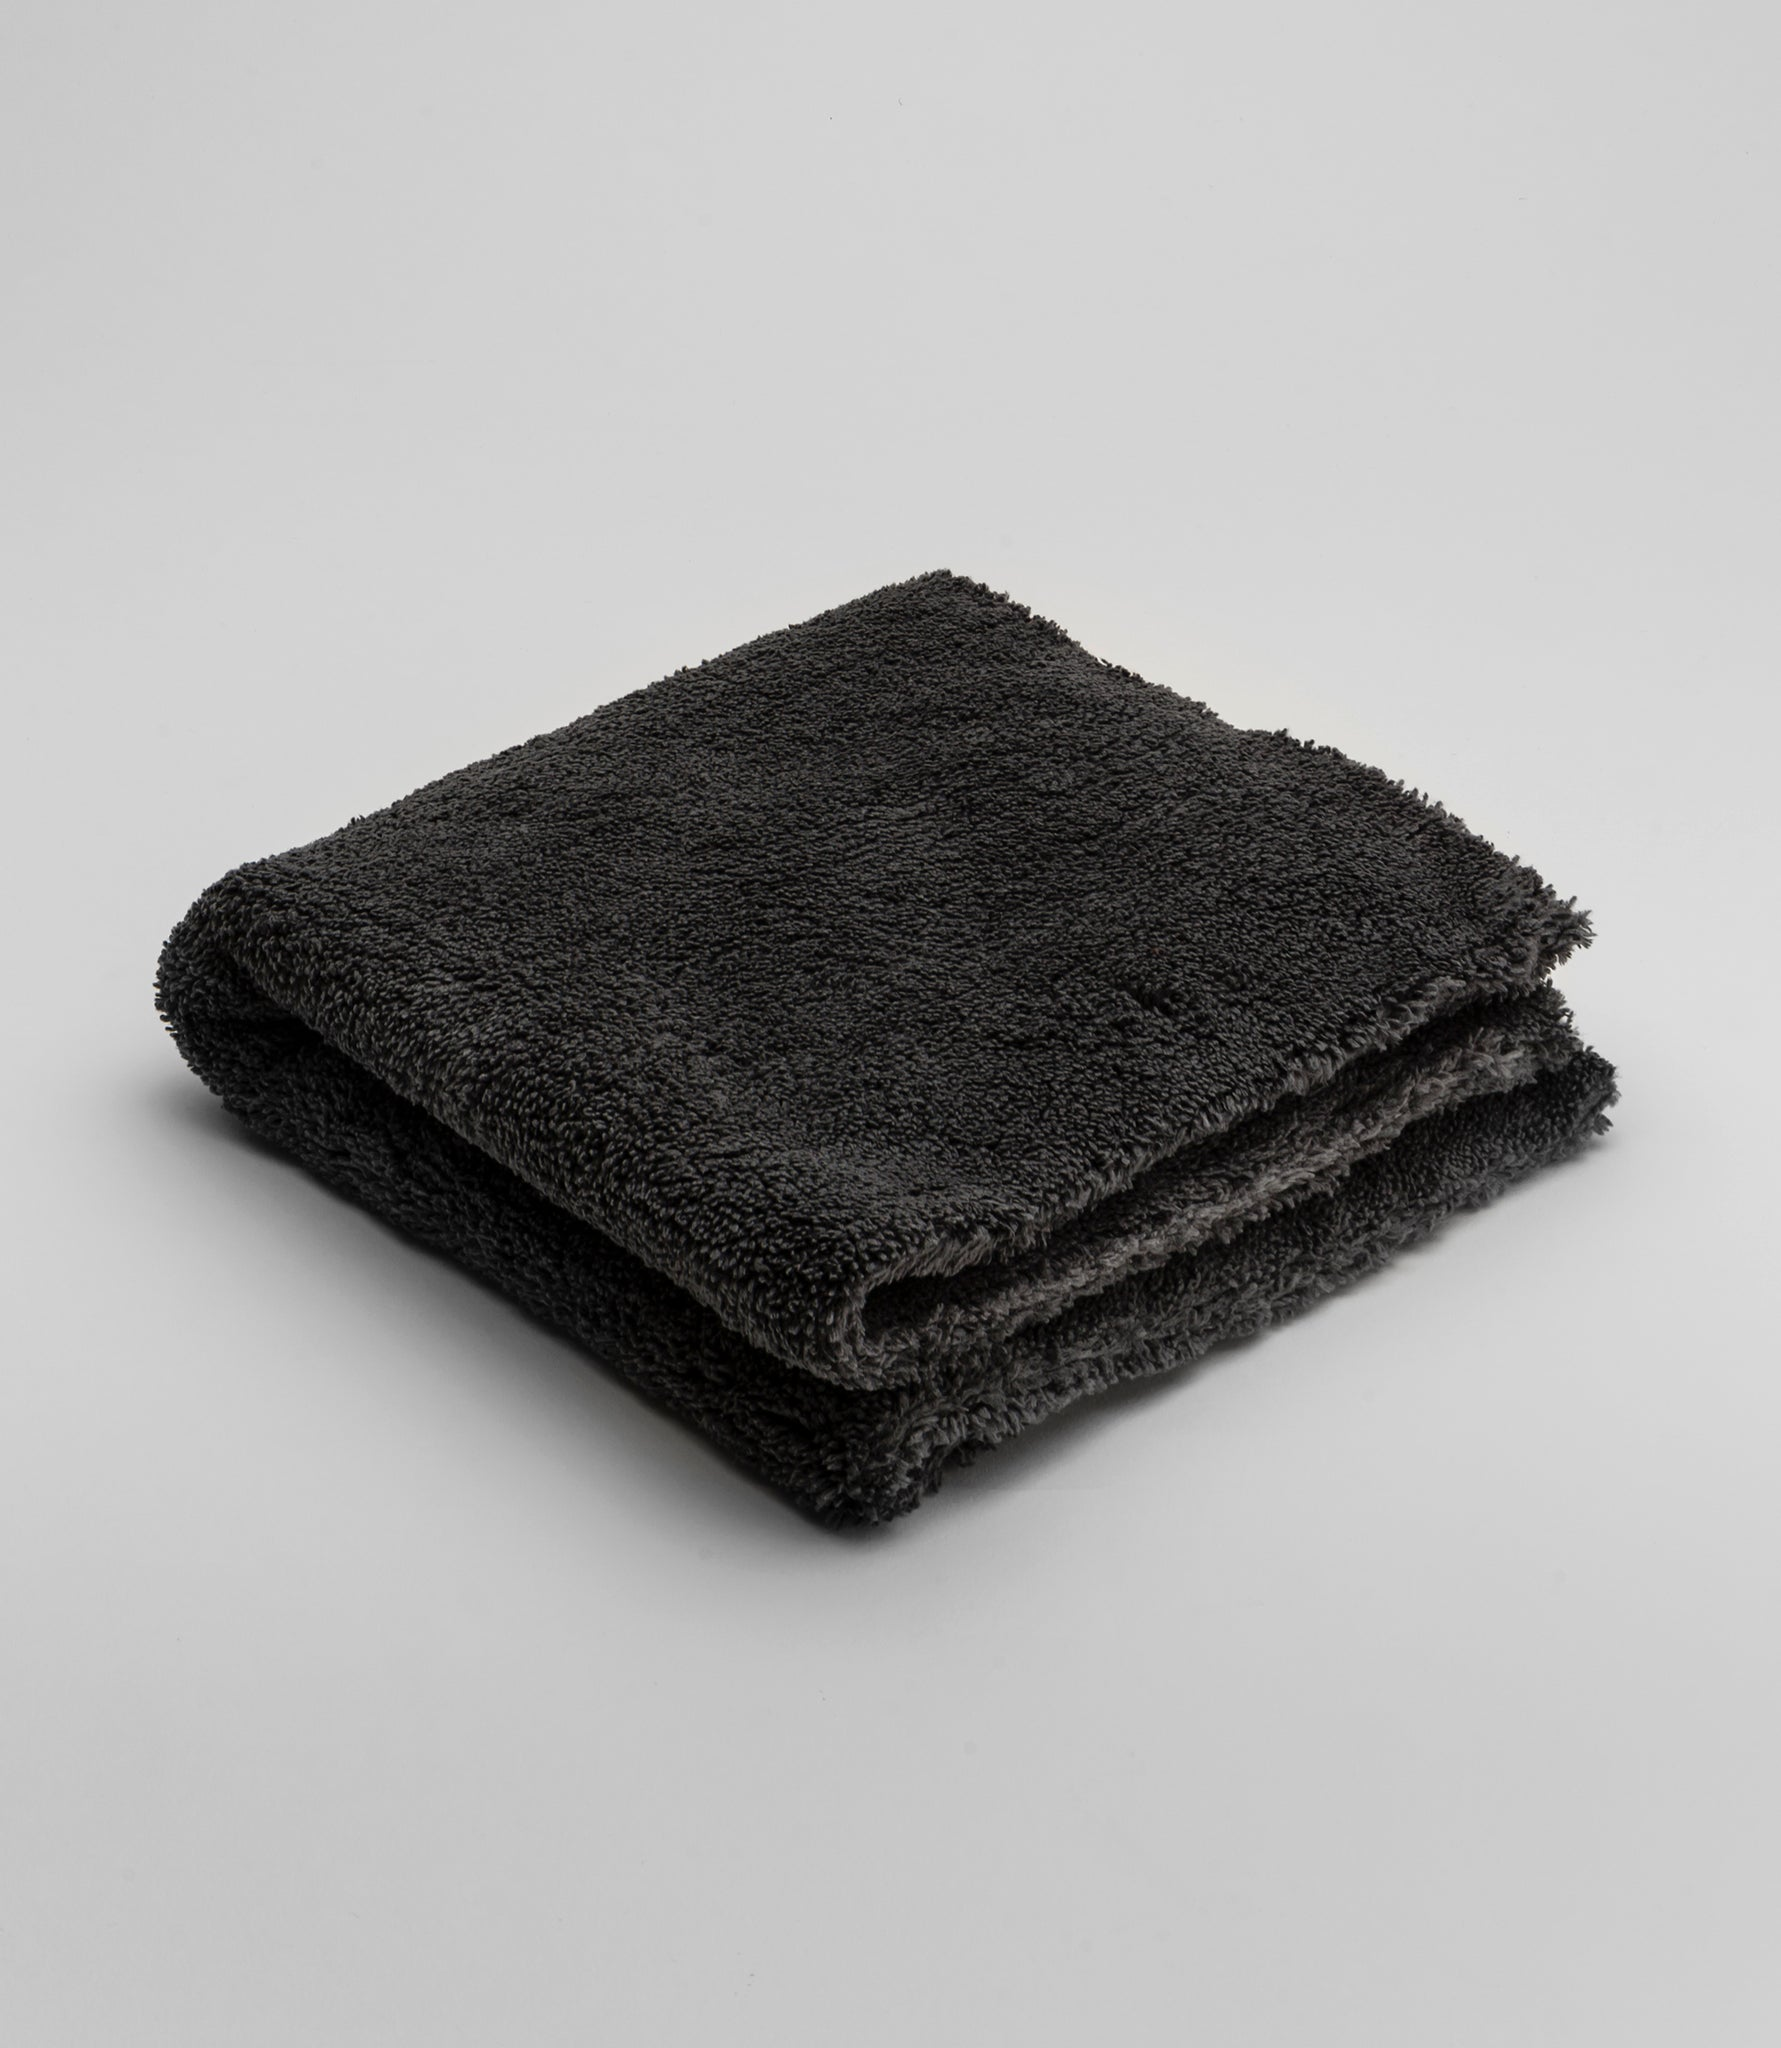 1000GSM Edgeless Microfibre Cloths 40cm x 40cm